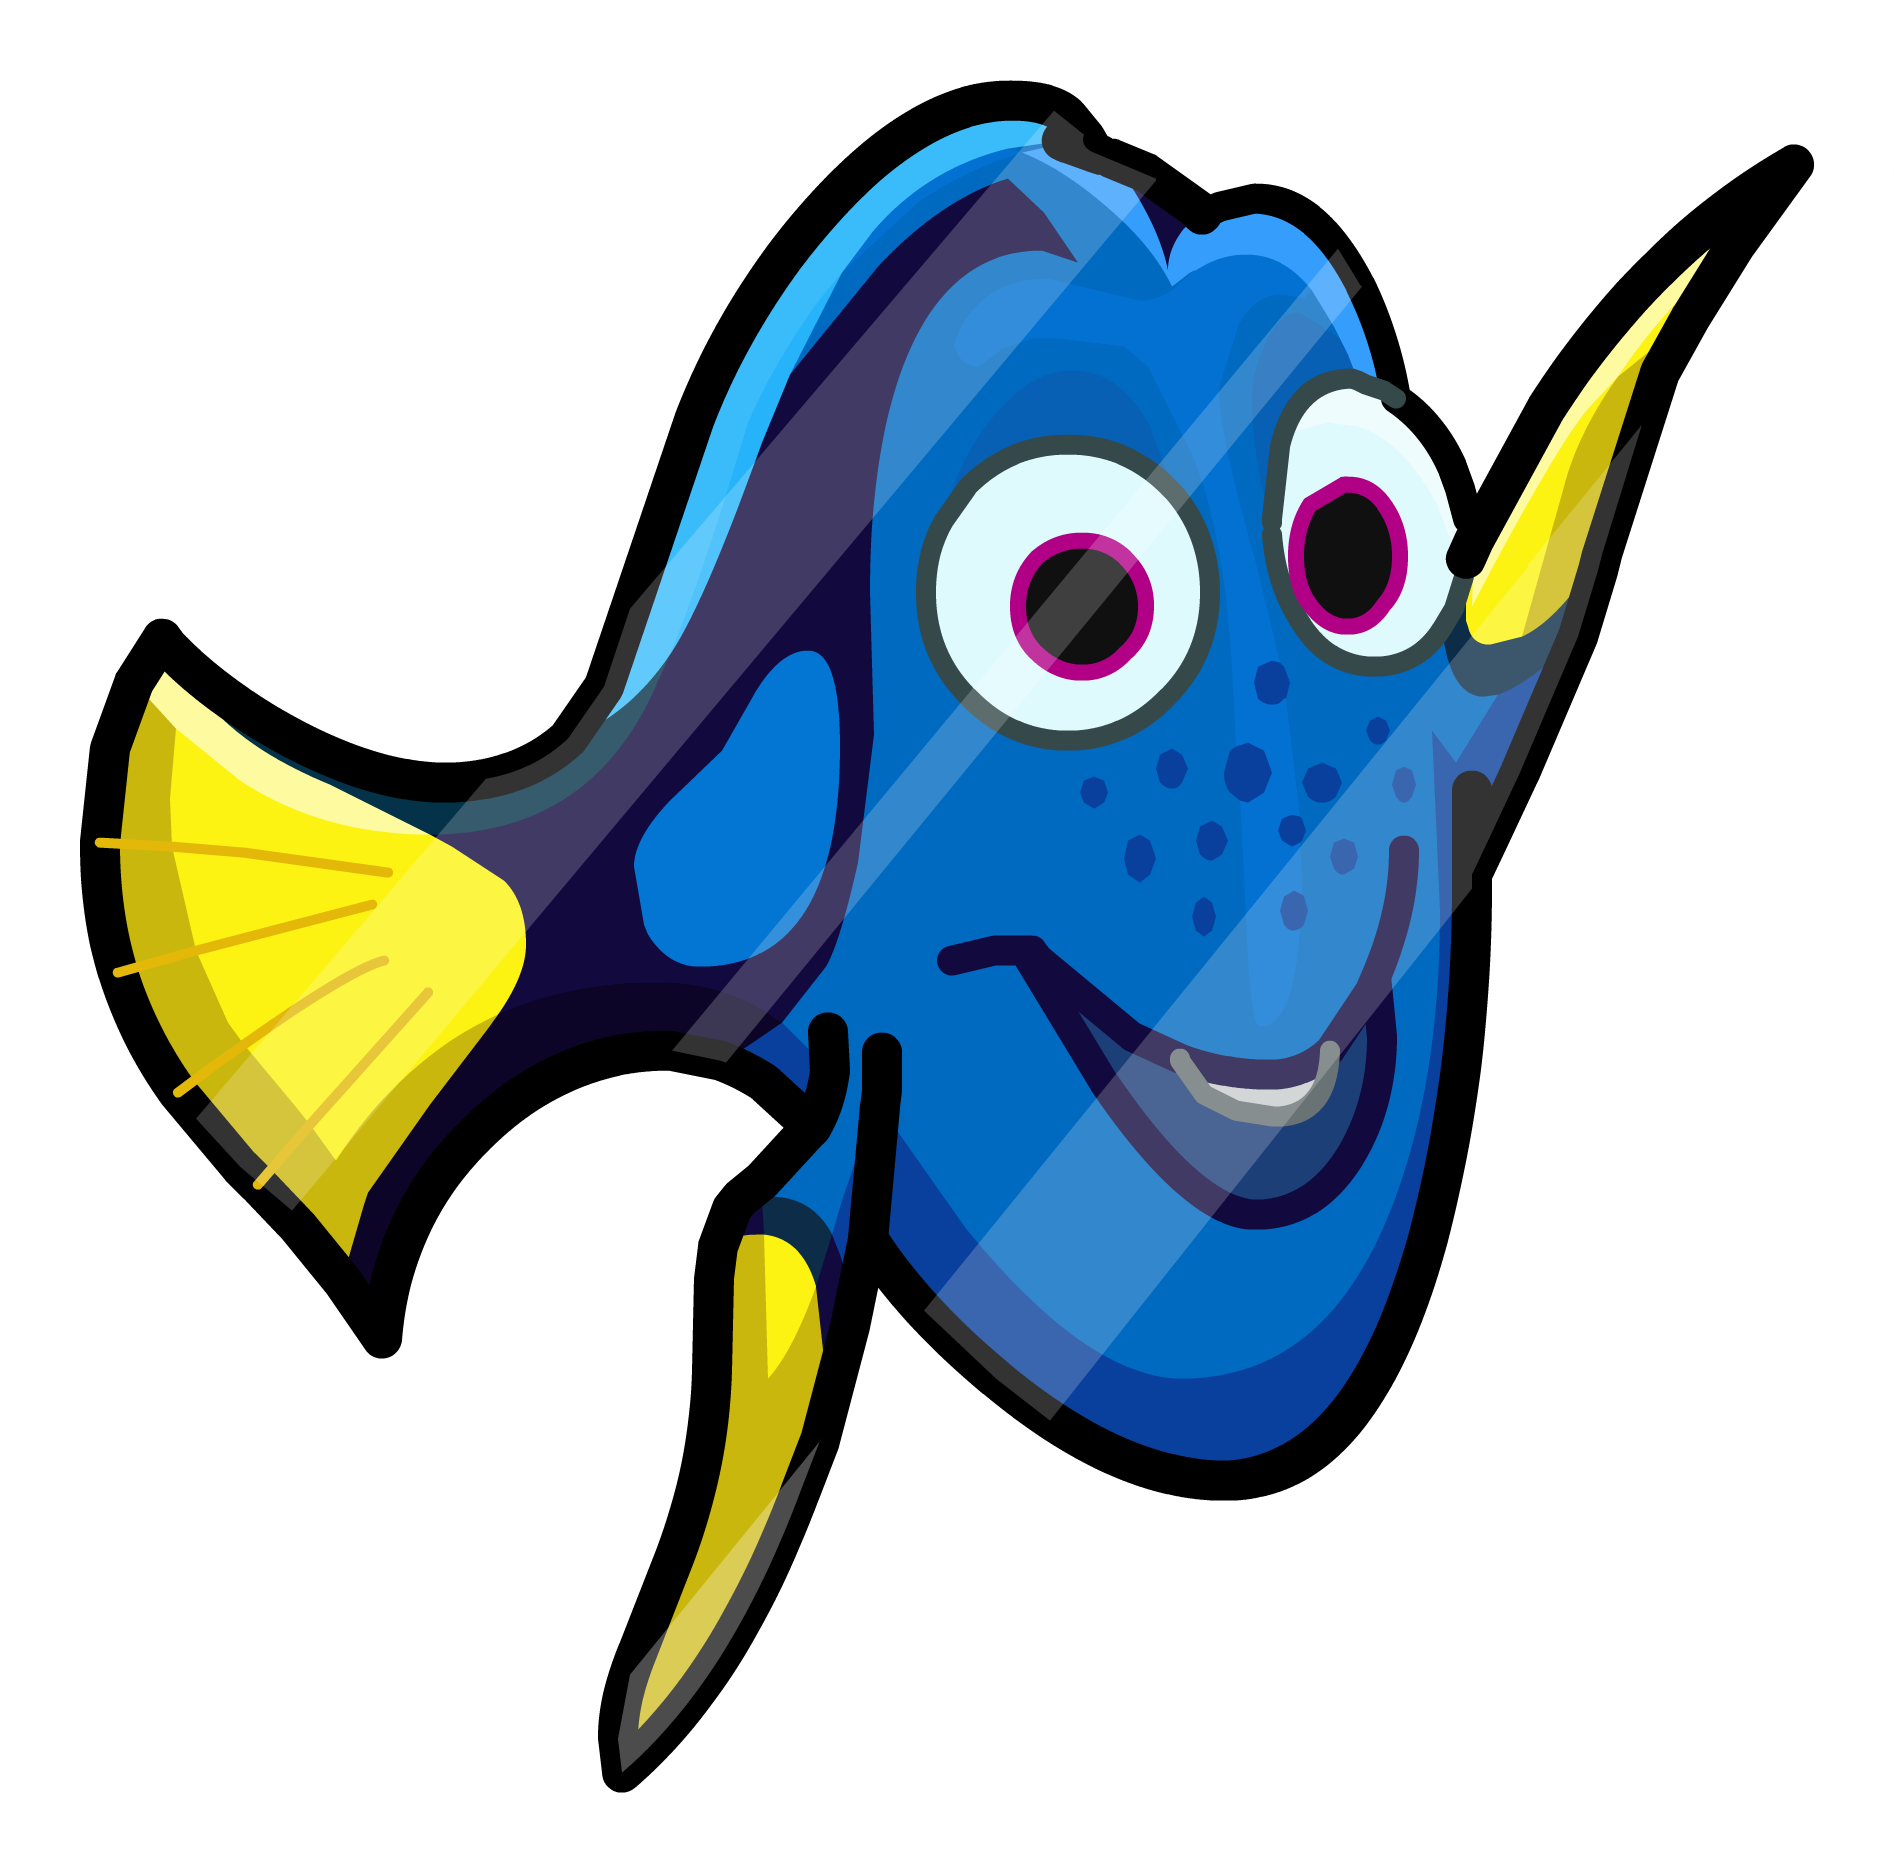 Dory clipart character pixar. Image finding pin icon